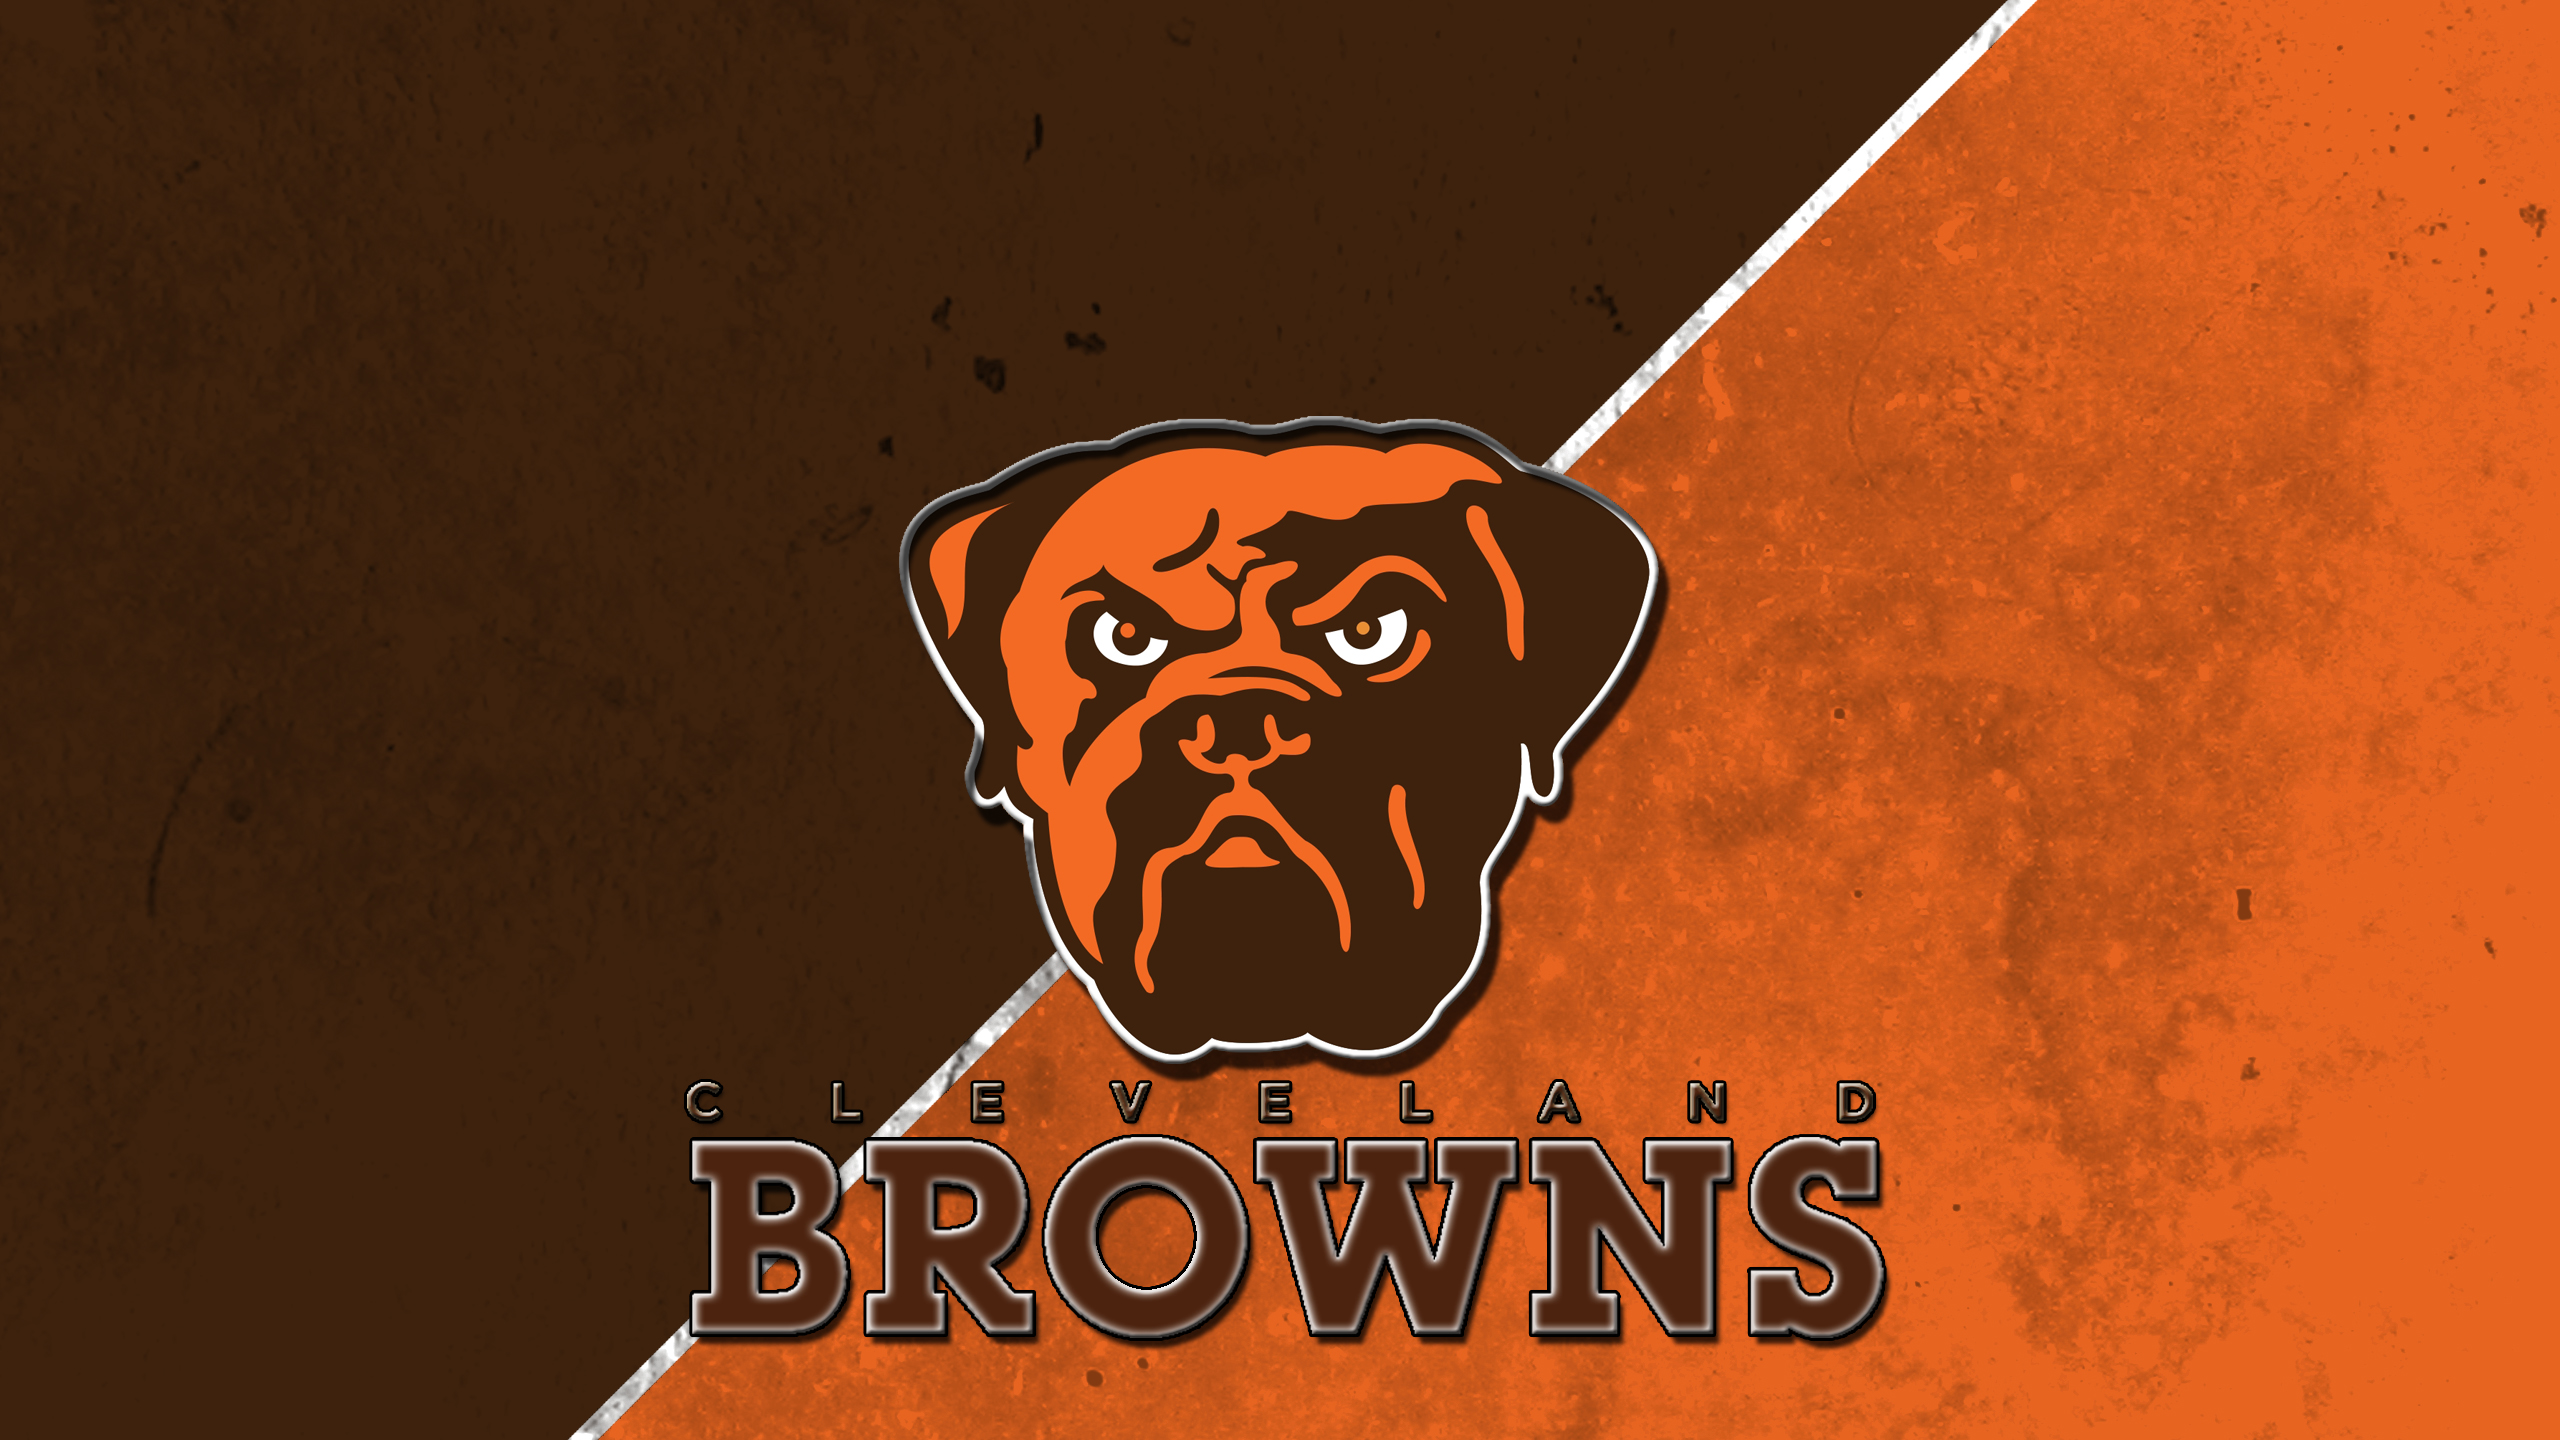 Cleveland Browns by BeAware8 on DeviantArt